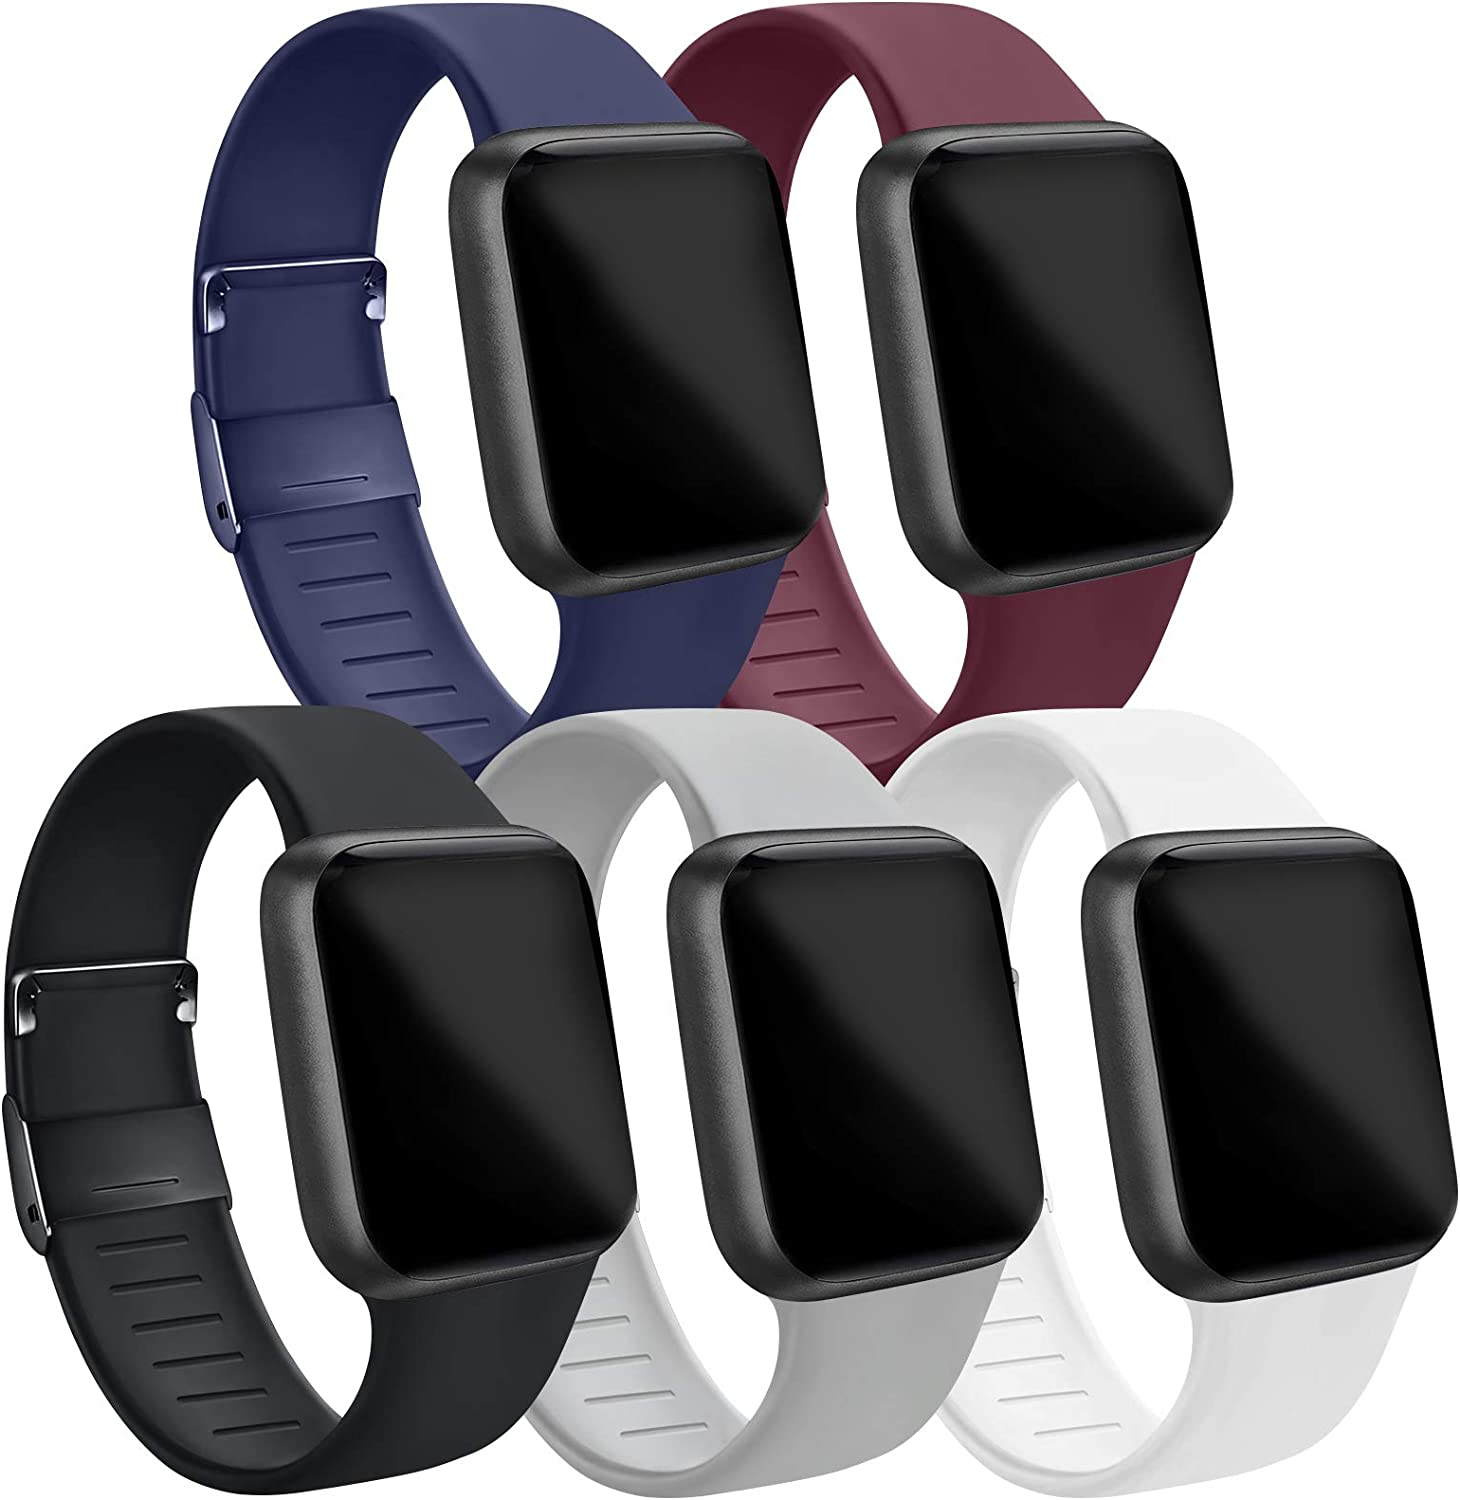 IEOVIEE [Pack 5] Compatible for Apple Watch Bands 38mm 42mm women men, Soft Silicone Strap Compatible with iWatch bands Series 6 5 4 3 2 1 & SE (Black/Gray/Navy Blue/Wine Red/White, 42mm/44mm-M/L)